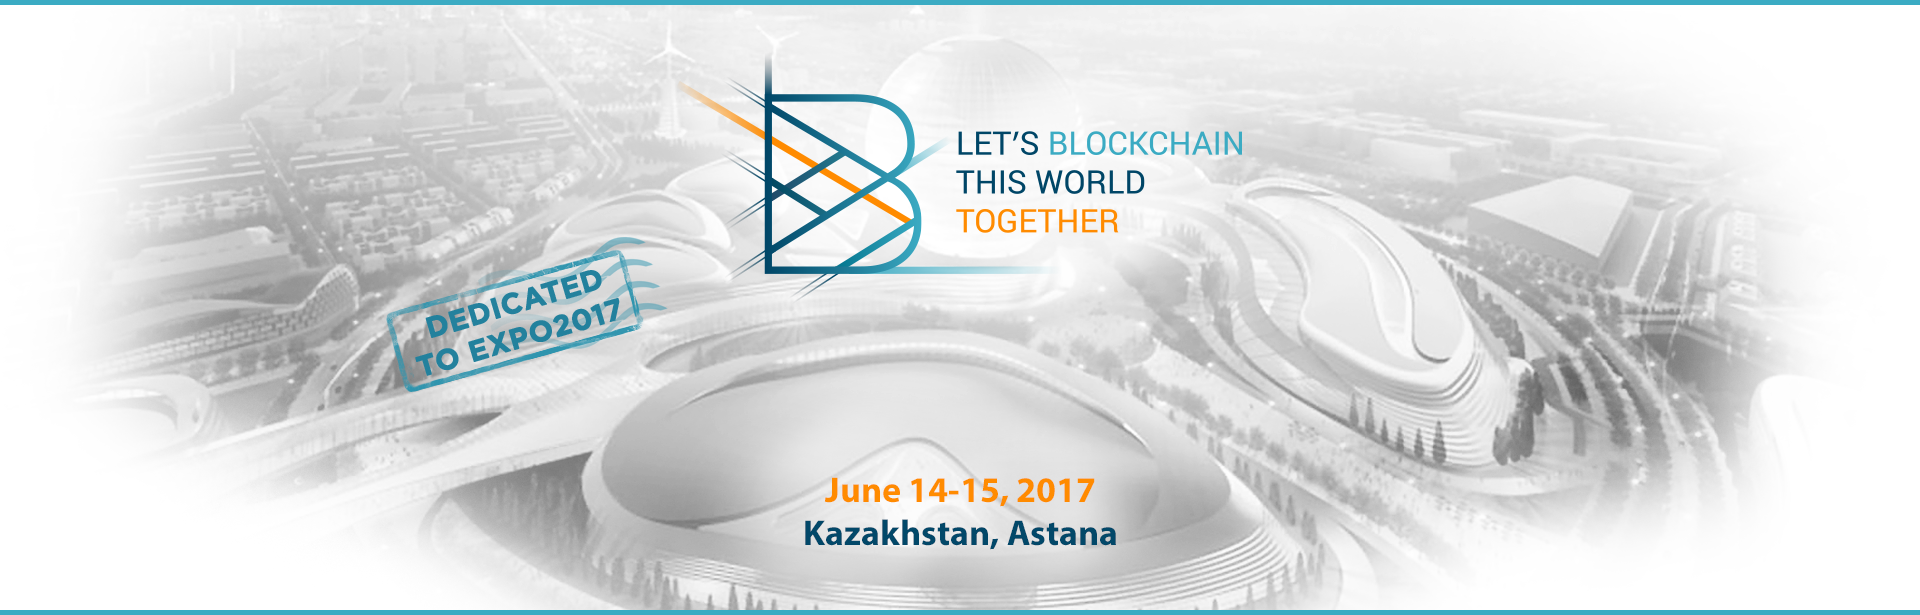 Blockchain Conference to Take Place in Kazakhstan